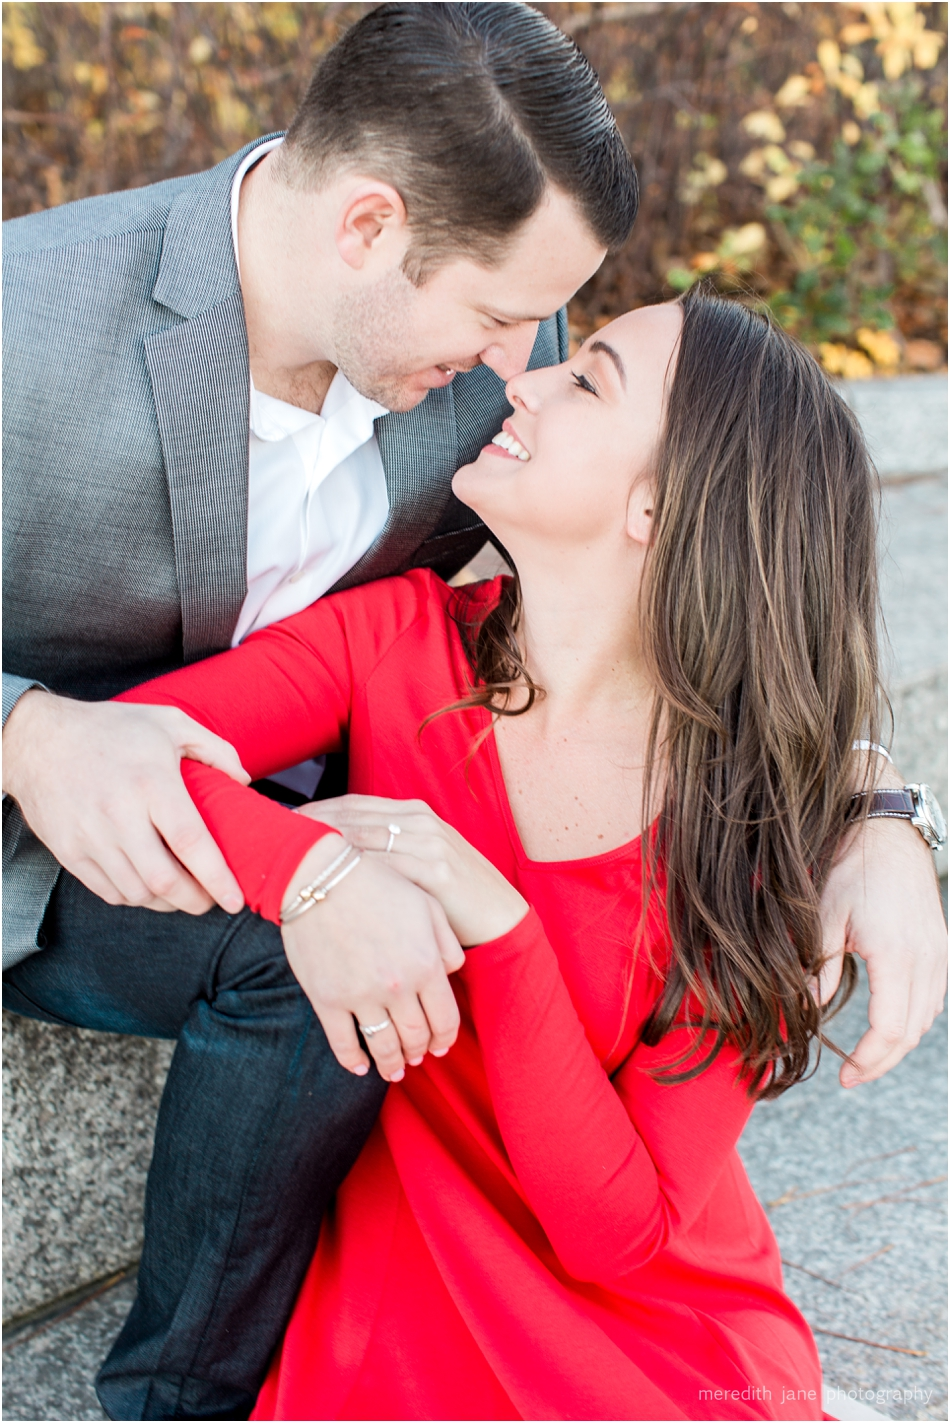 seaport_boston_massachusetts_engagement_common_fall_foliage_cape_cod_wedding_photographer_Meredith_Jane_Photography_photo_0960.jpg